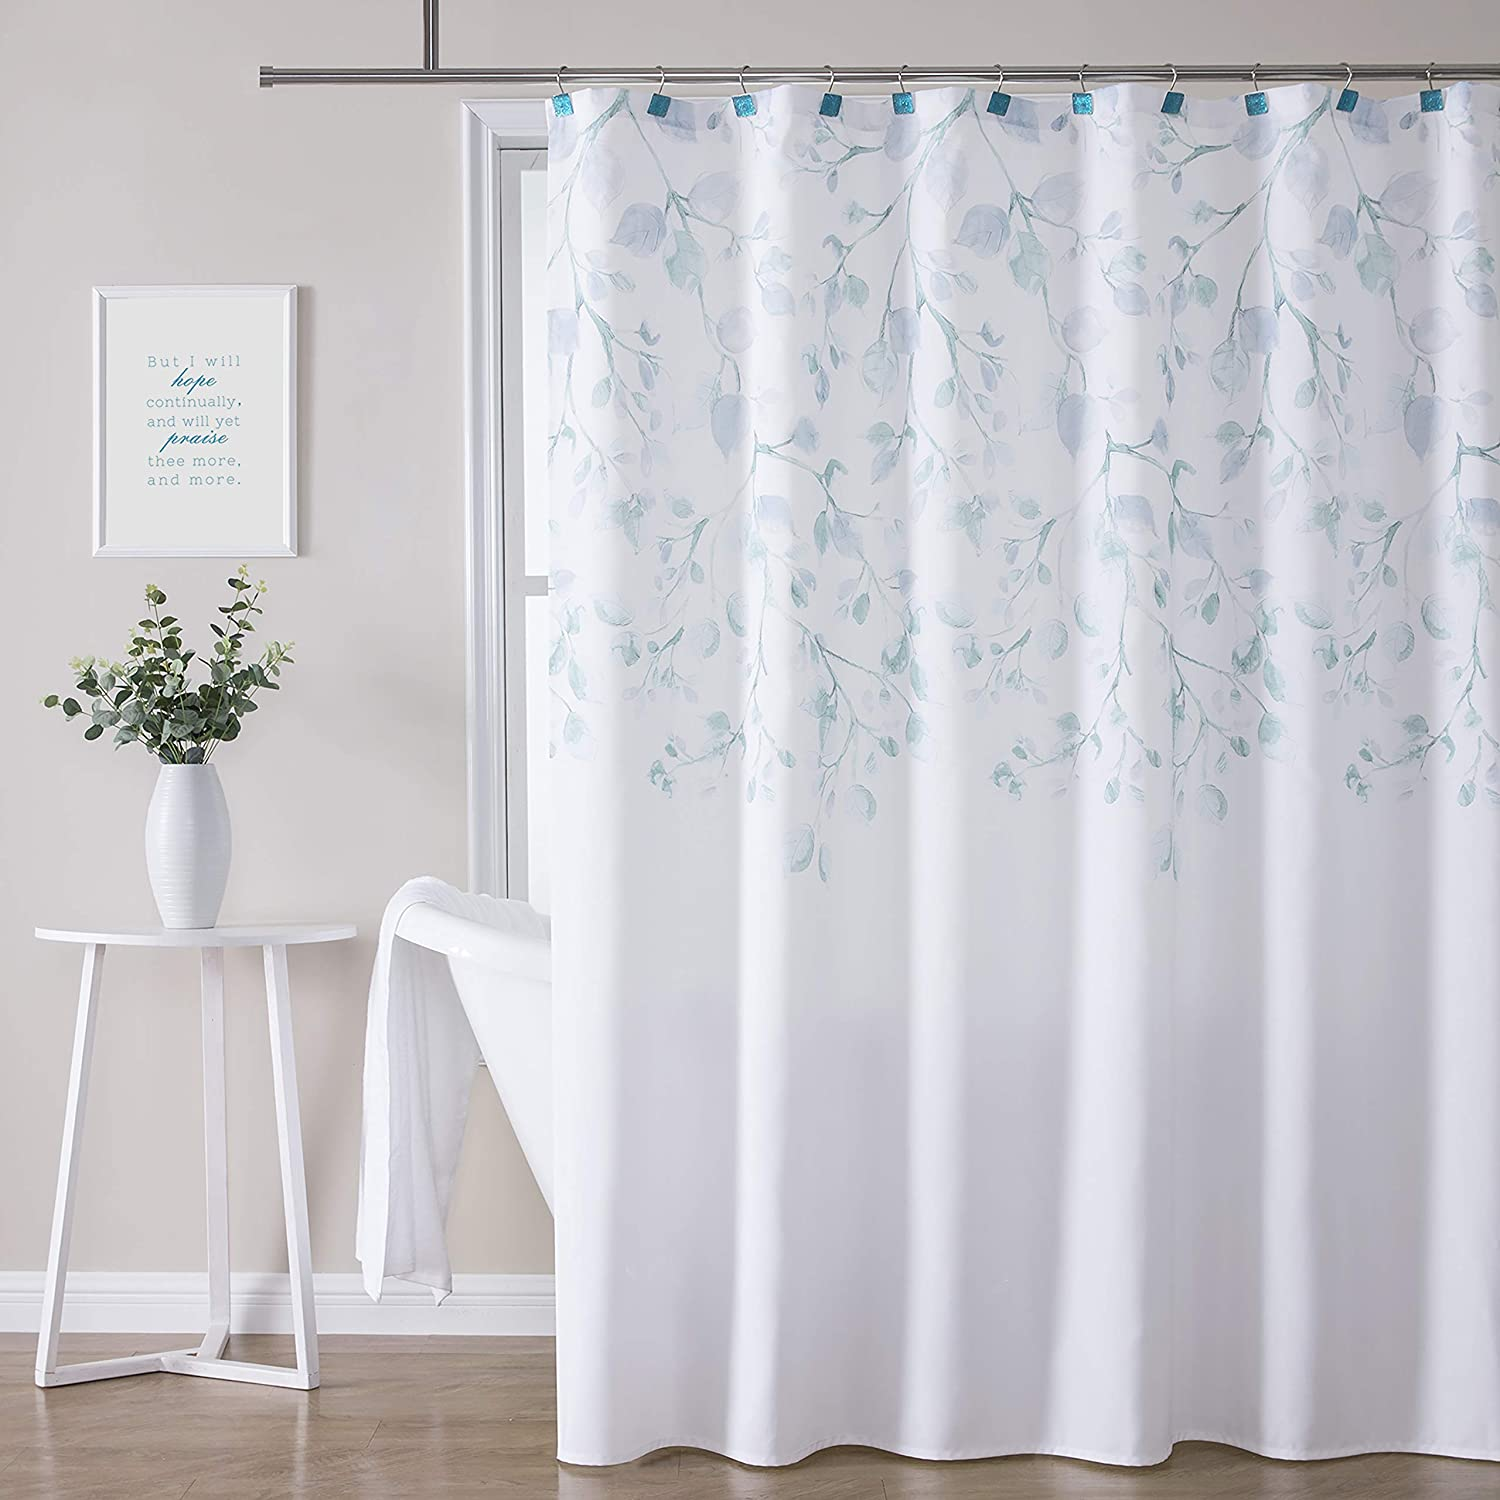 """Central Park Blue Leaf Shower Curtain Water Resistant Decorative Sweeping Floral Print Canvas Bathroom Spa Hotel Shower Curtain with Buttonholes (White, 70""""x84"""")"""